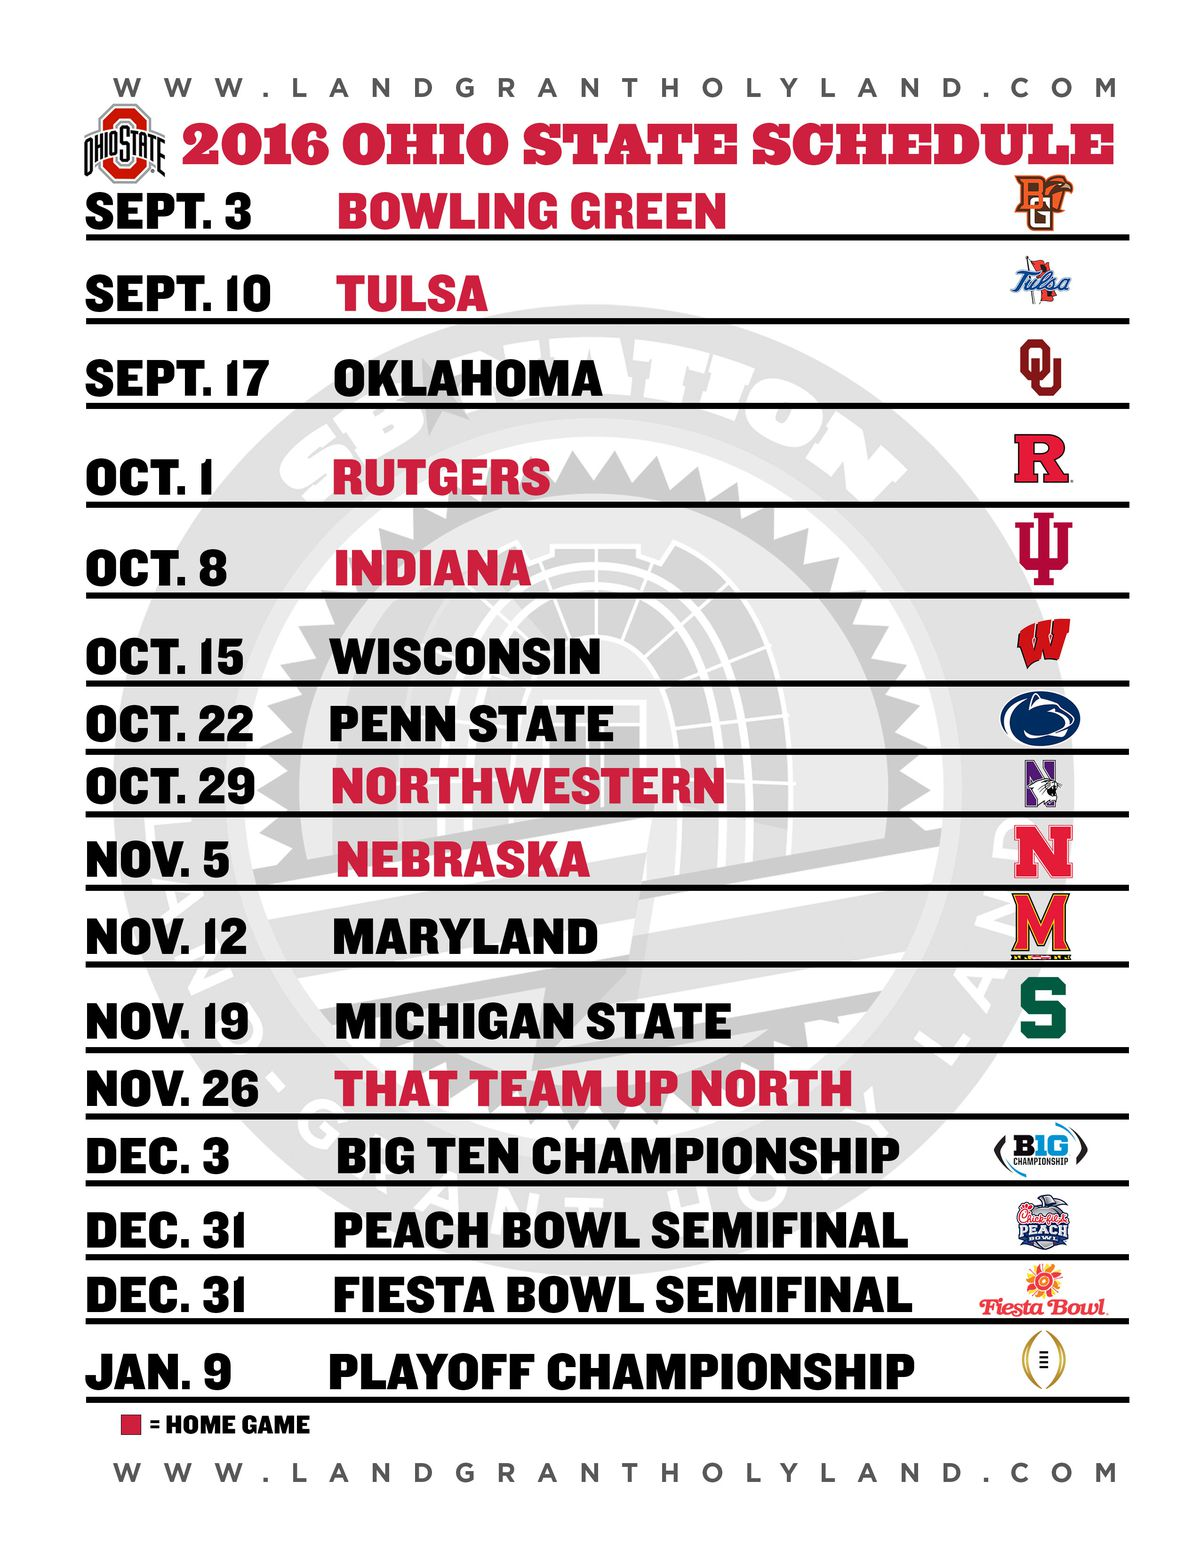 print your own 2016 ohio state football graphical schedule - land